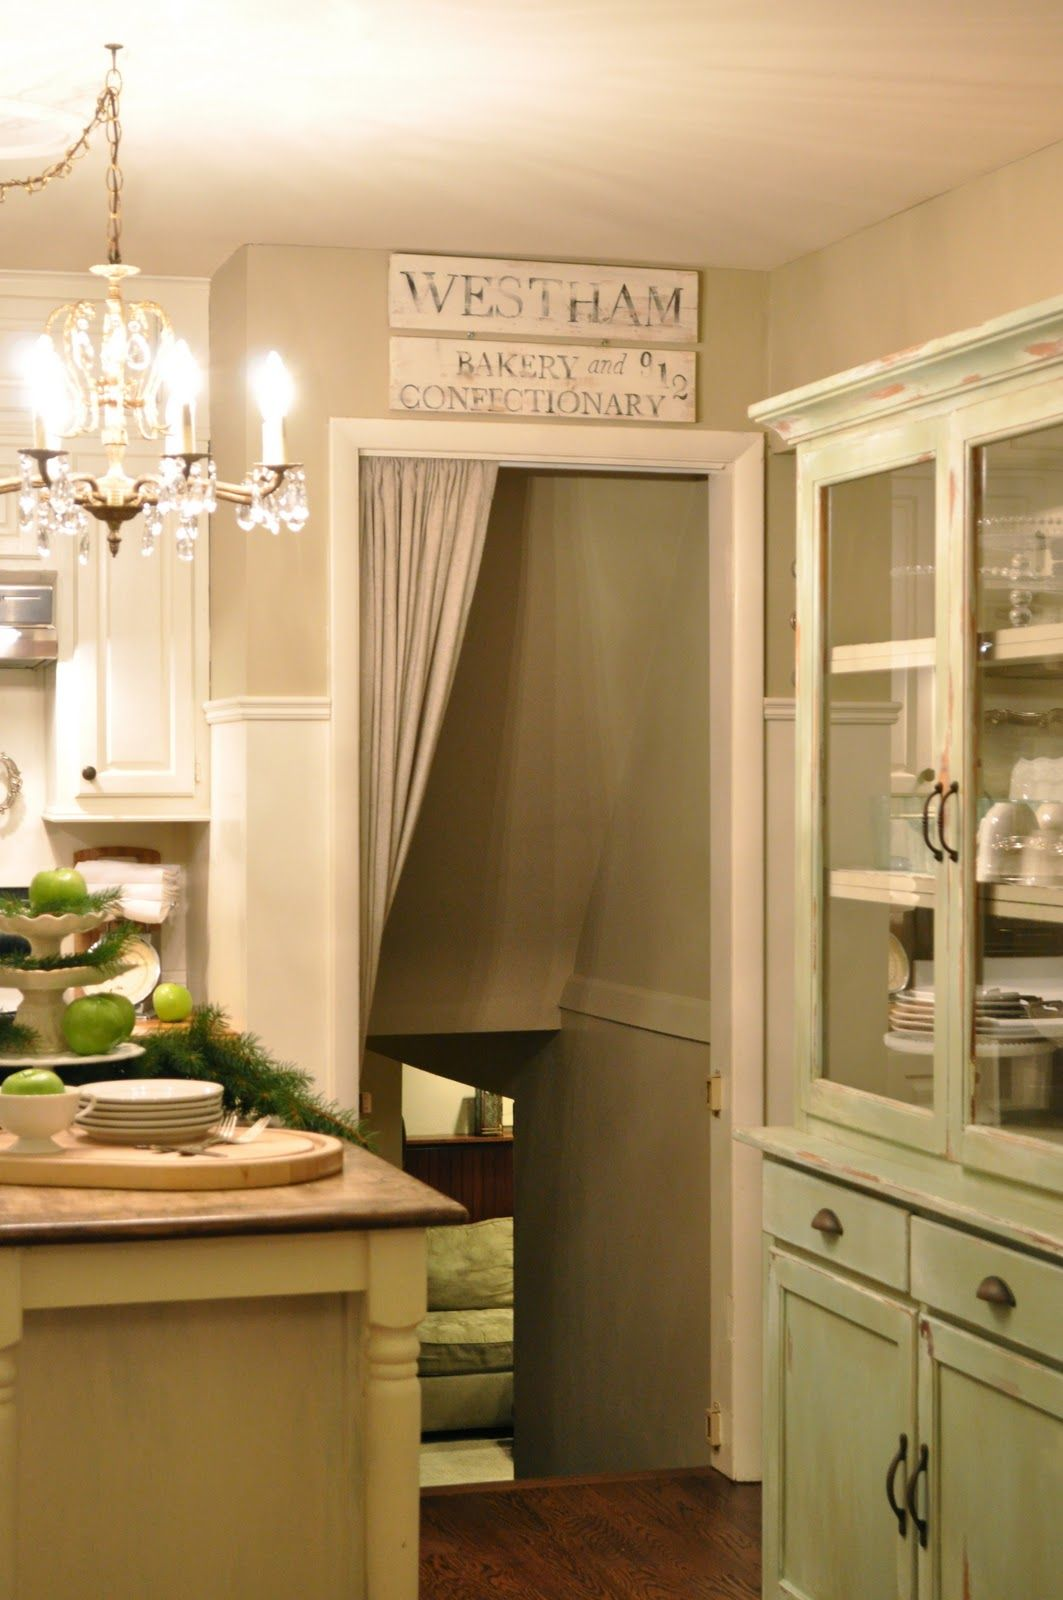 Kitchen | Home Sweet Home | Pinterest | Kitchens, Doors and Paint walls